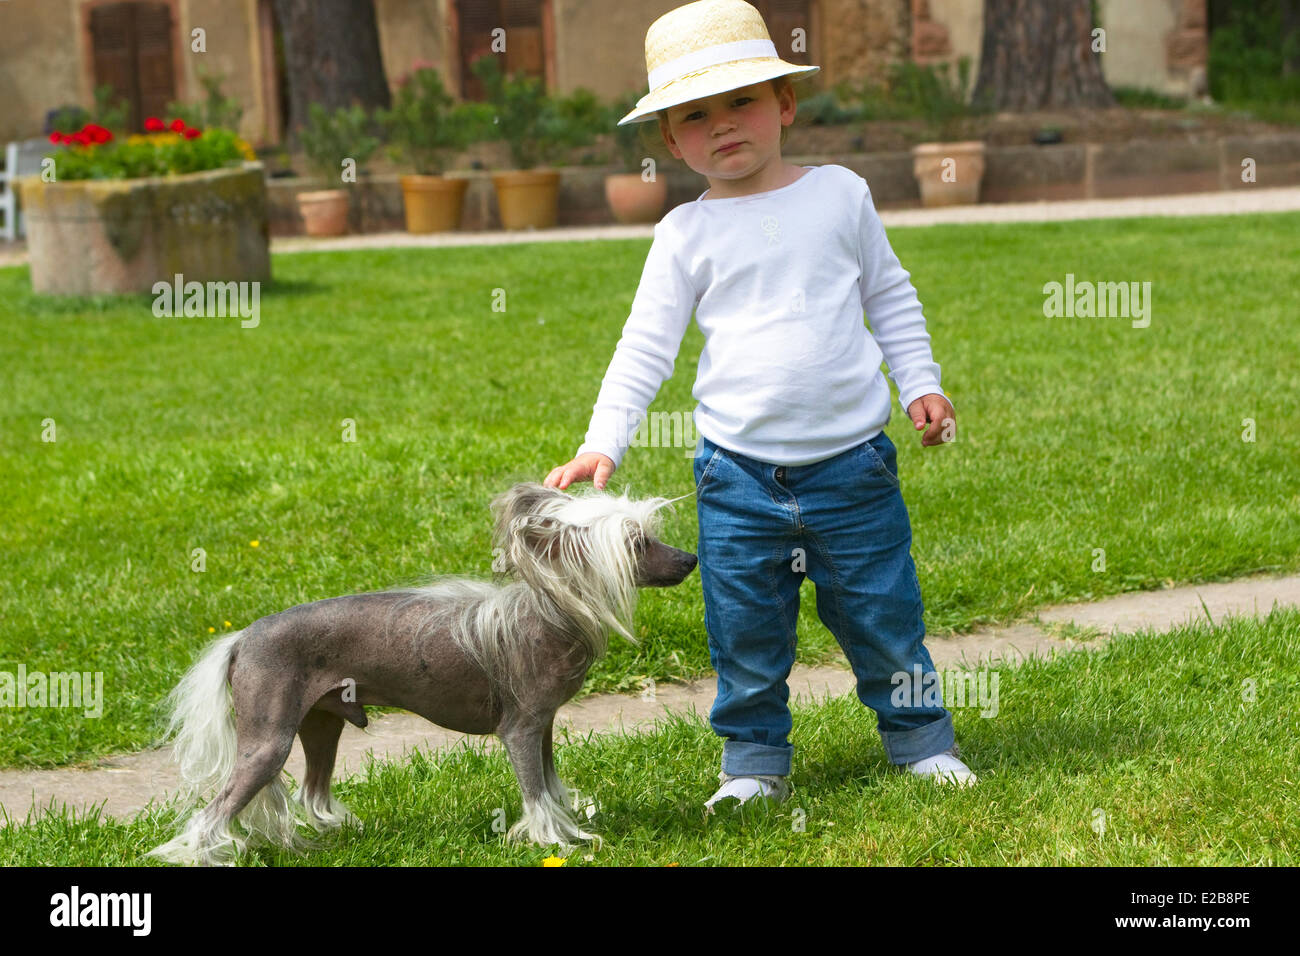 France, Bas Rhin, Thanville, Chinese Crested Dog (Canis lupus familiaris) - Stock Image